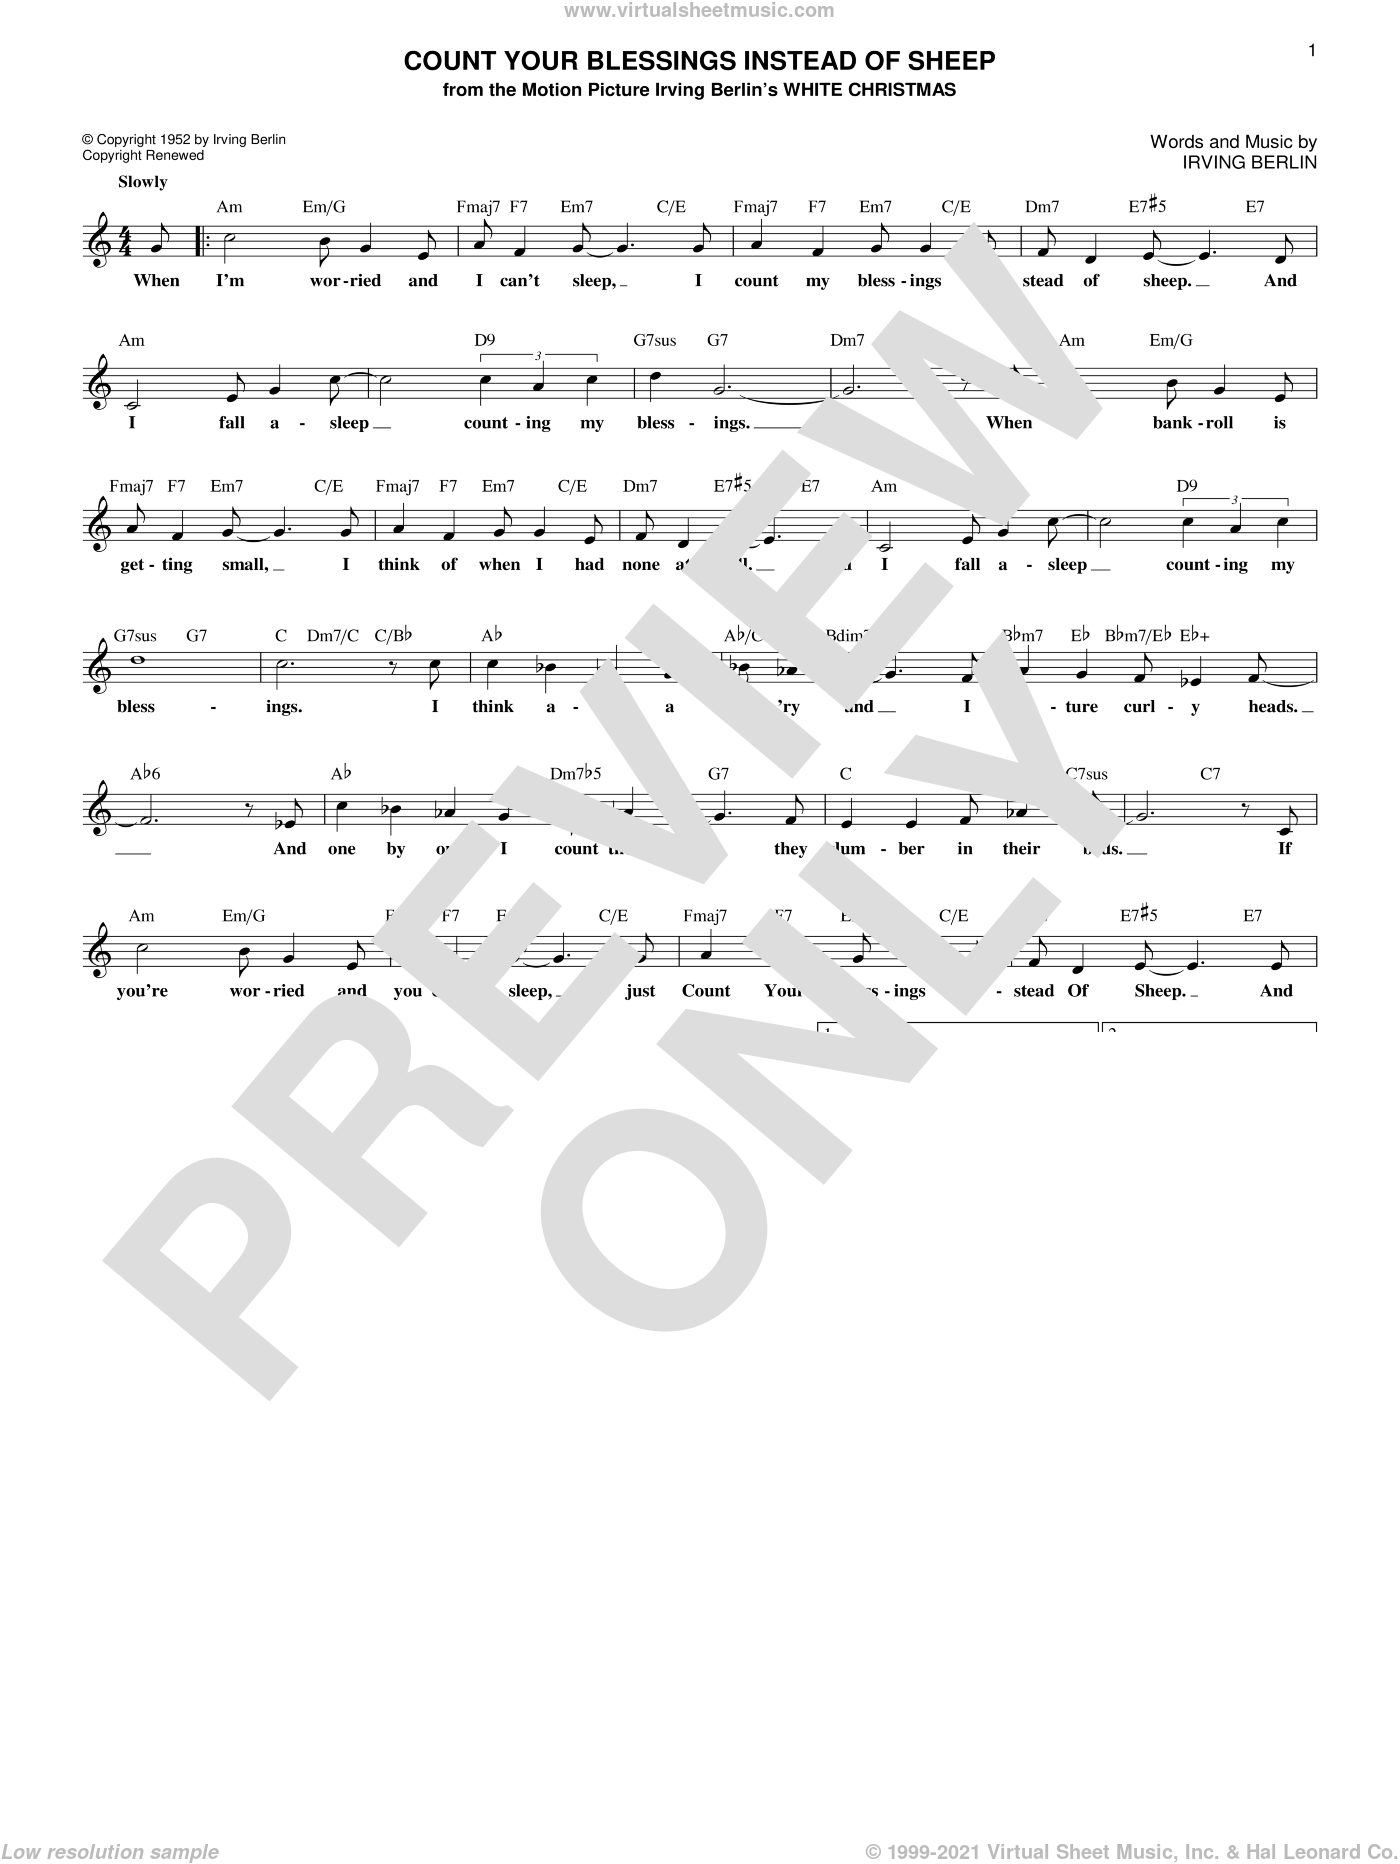 Count Your Blessings Instead Of Sheep sheet music for voice and other instruments (fake book) by Irving Berlin, Bing Crosby and Rosemary Clooney and Eddie Fisher, intermediate skill level